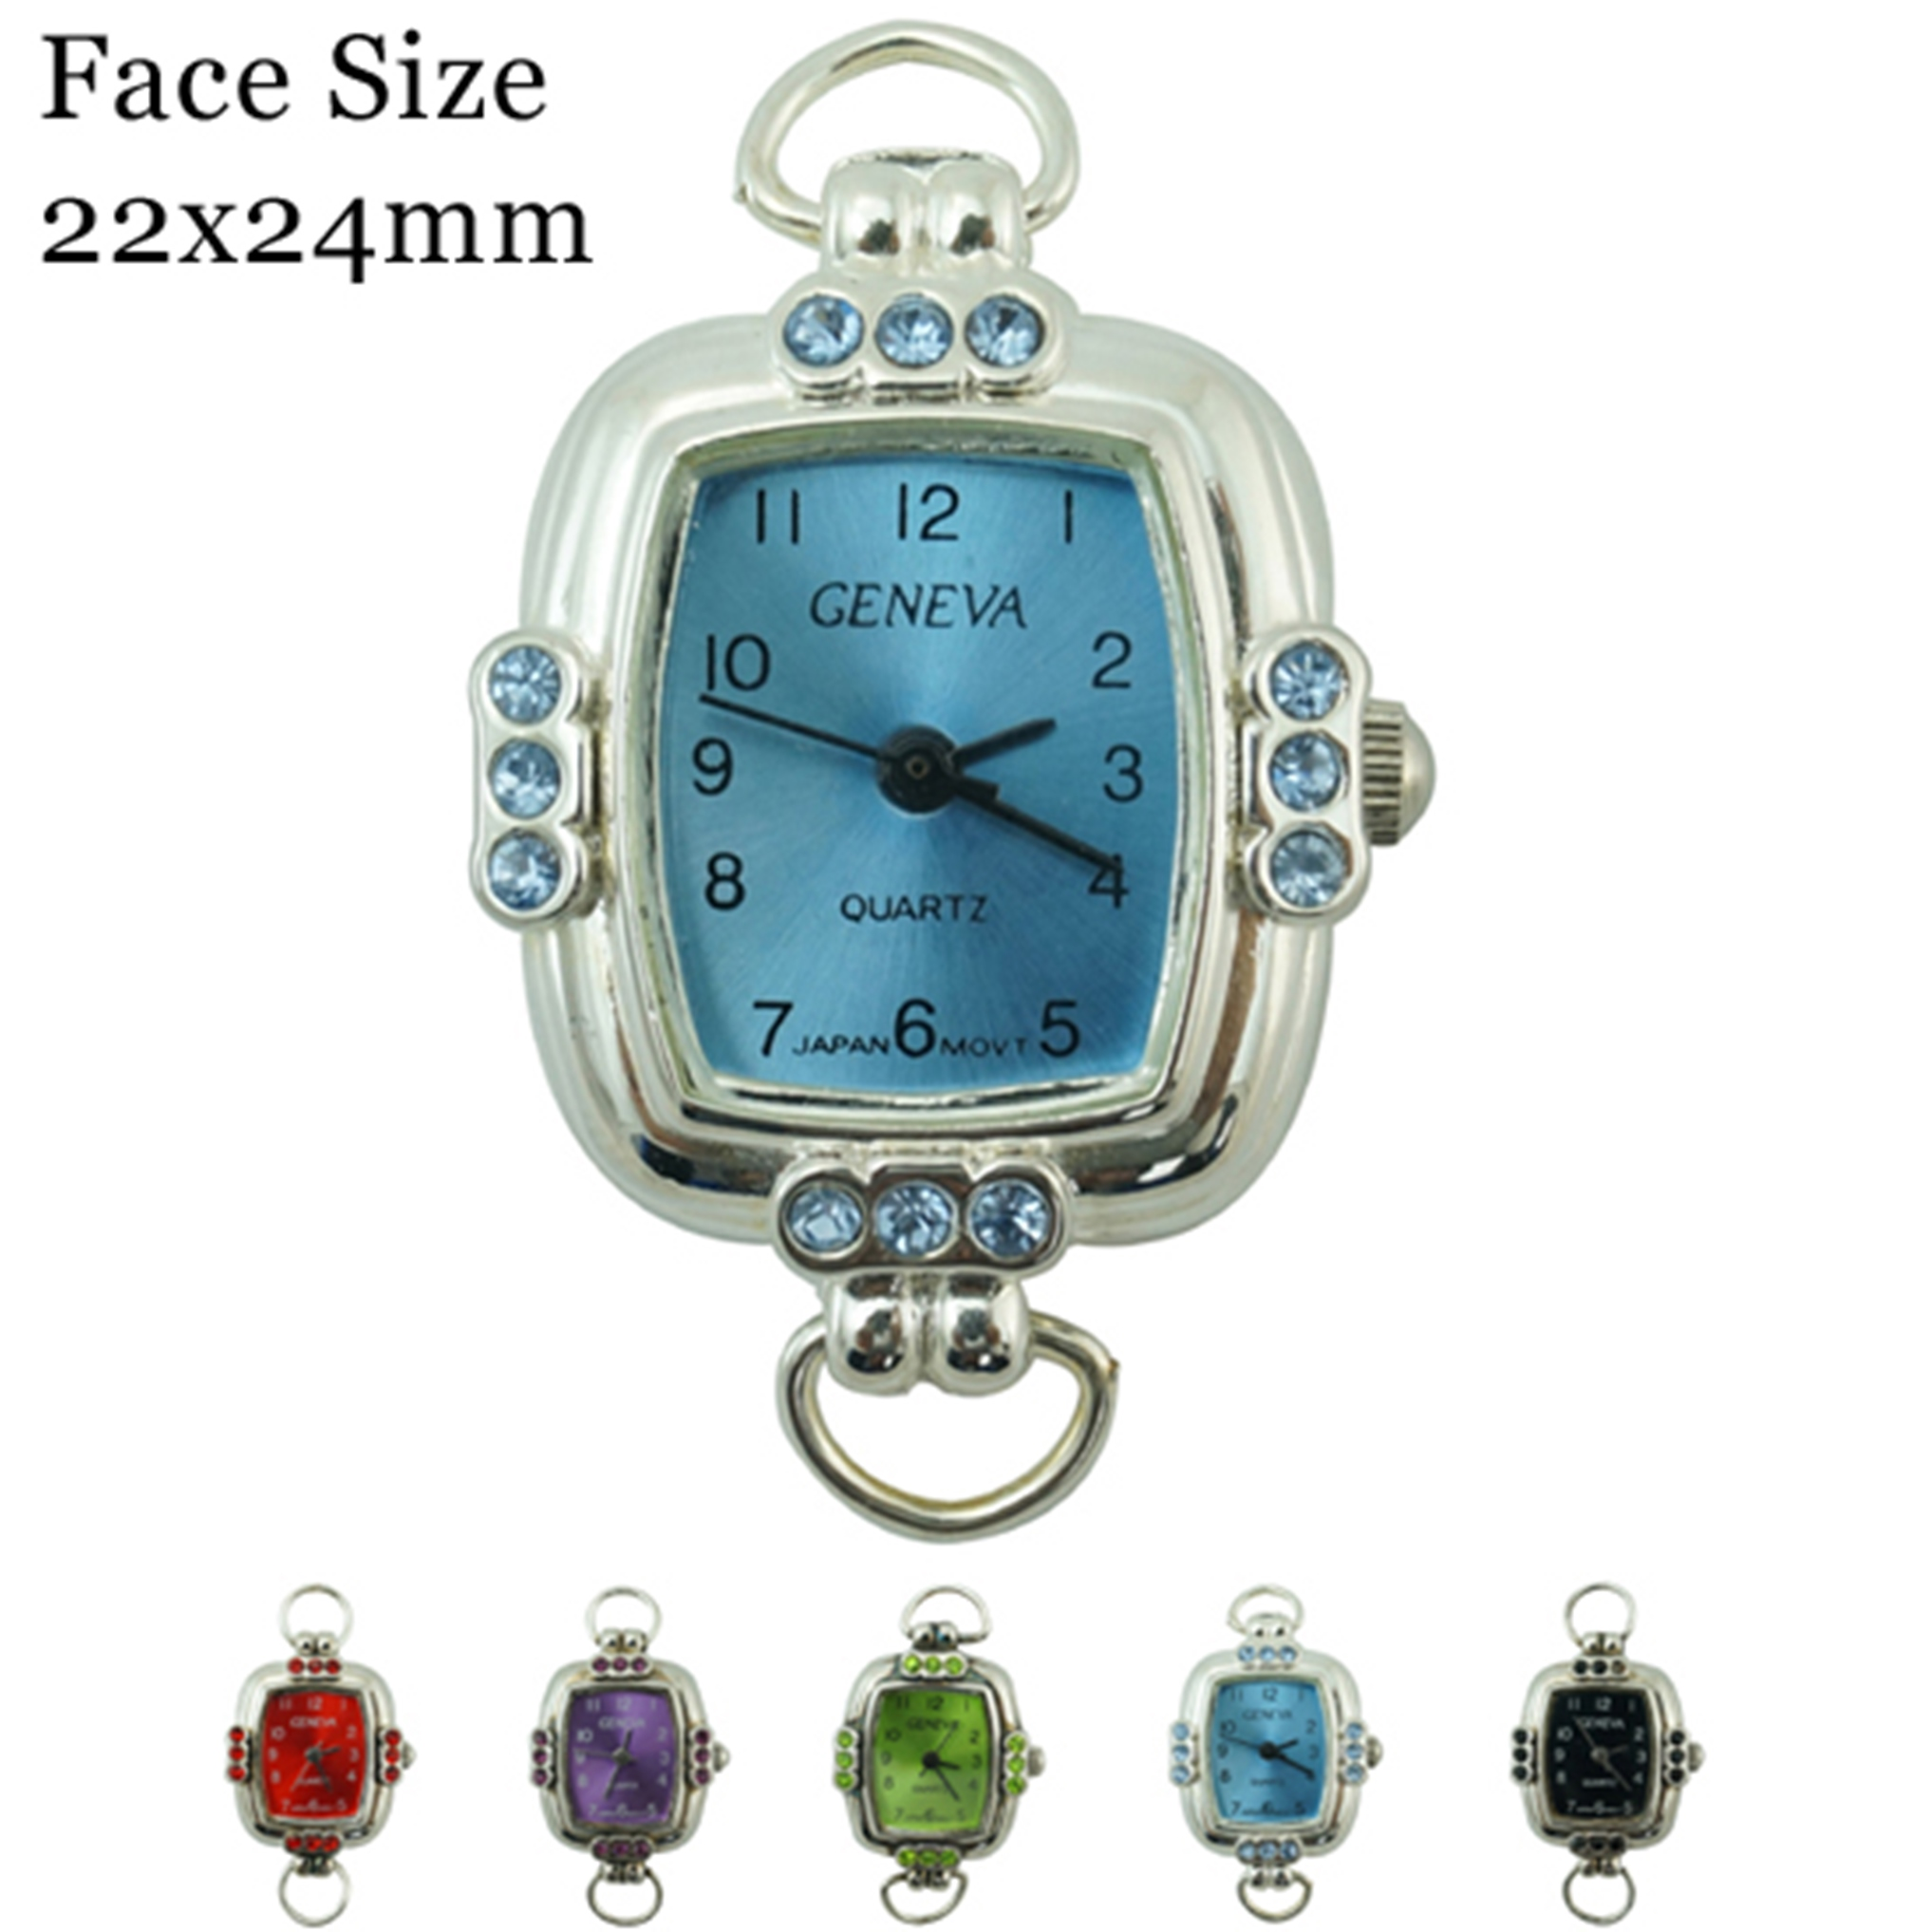 Women's CZ 24 mm Dial with fancy Style face